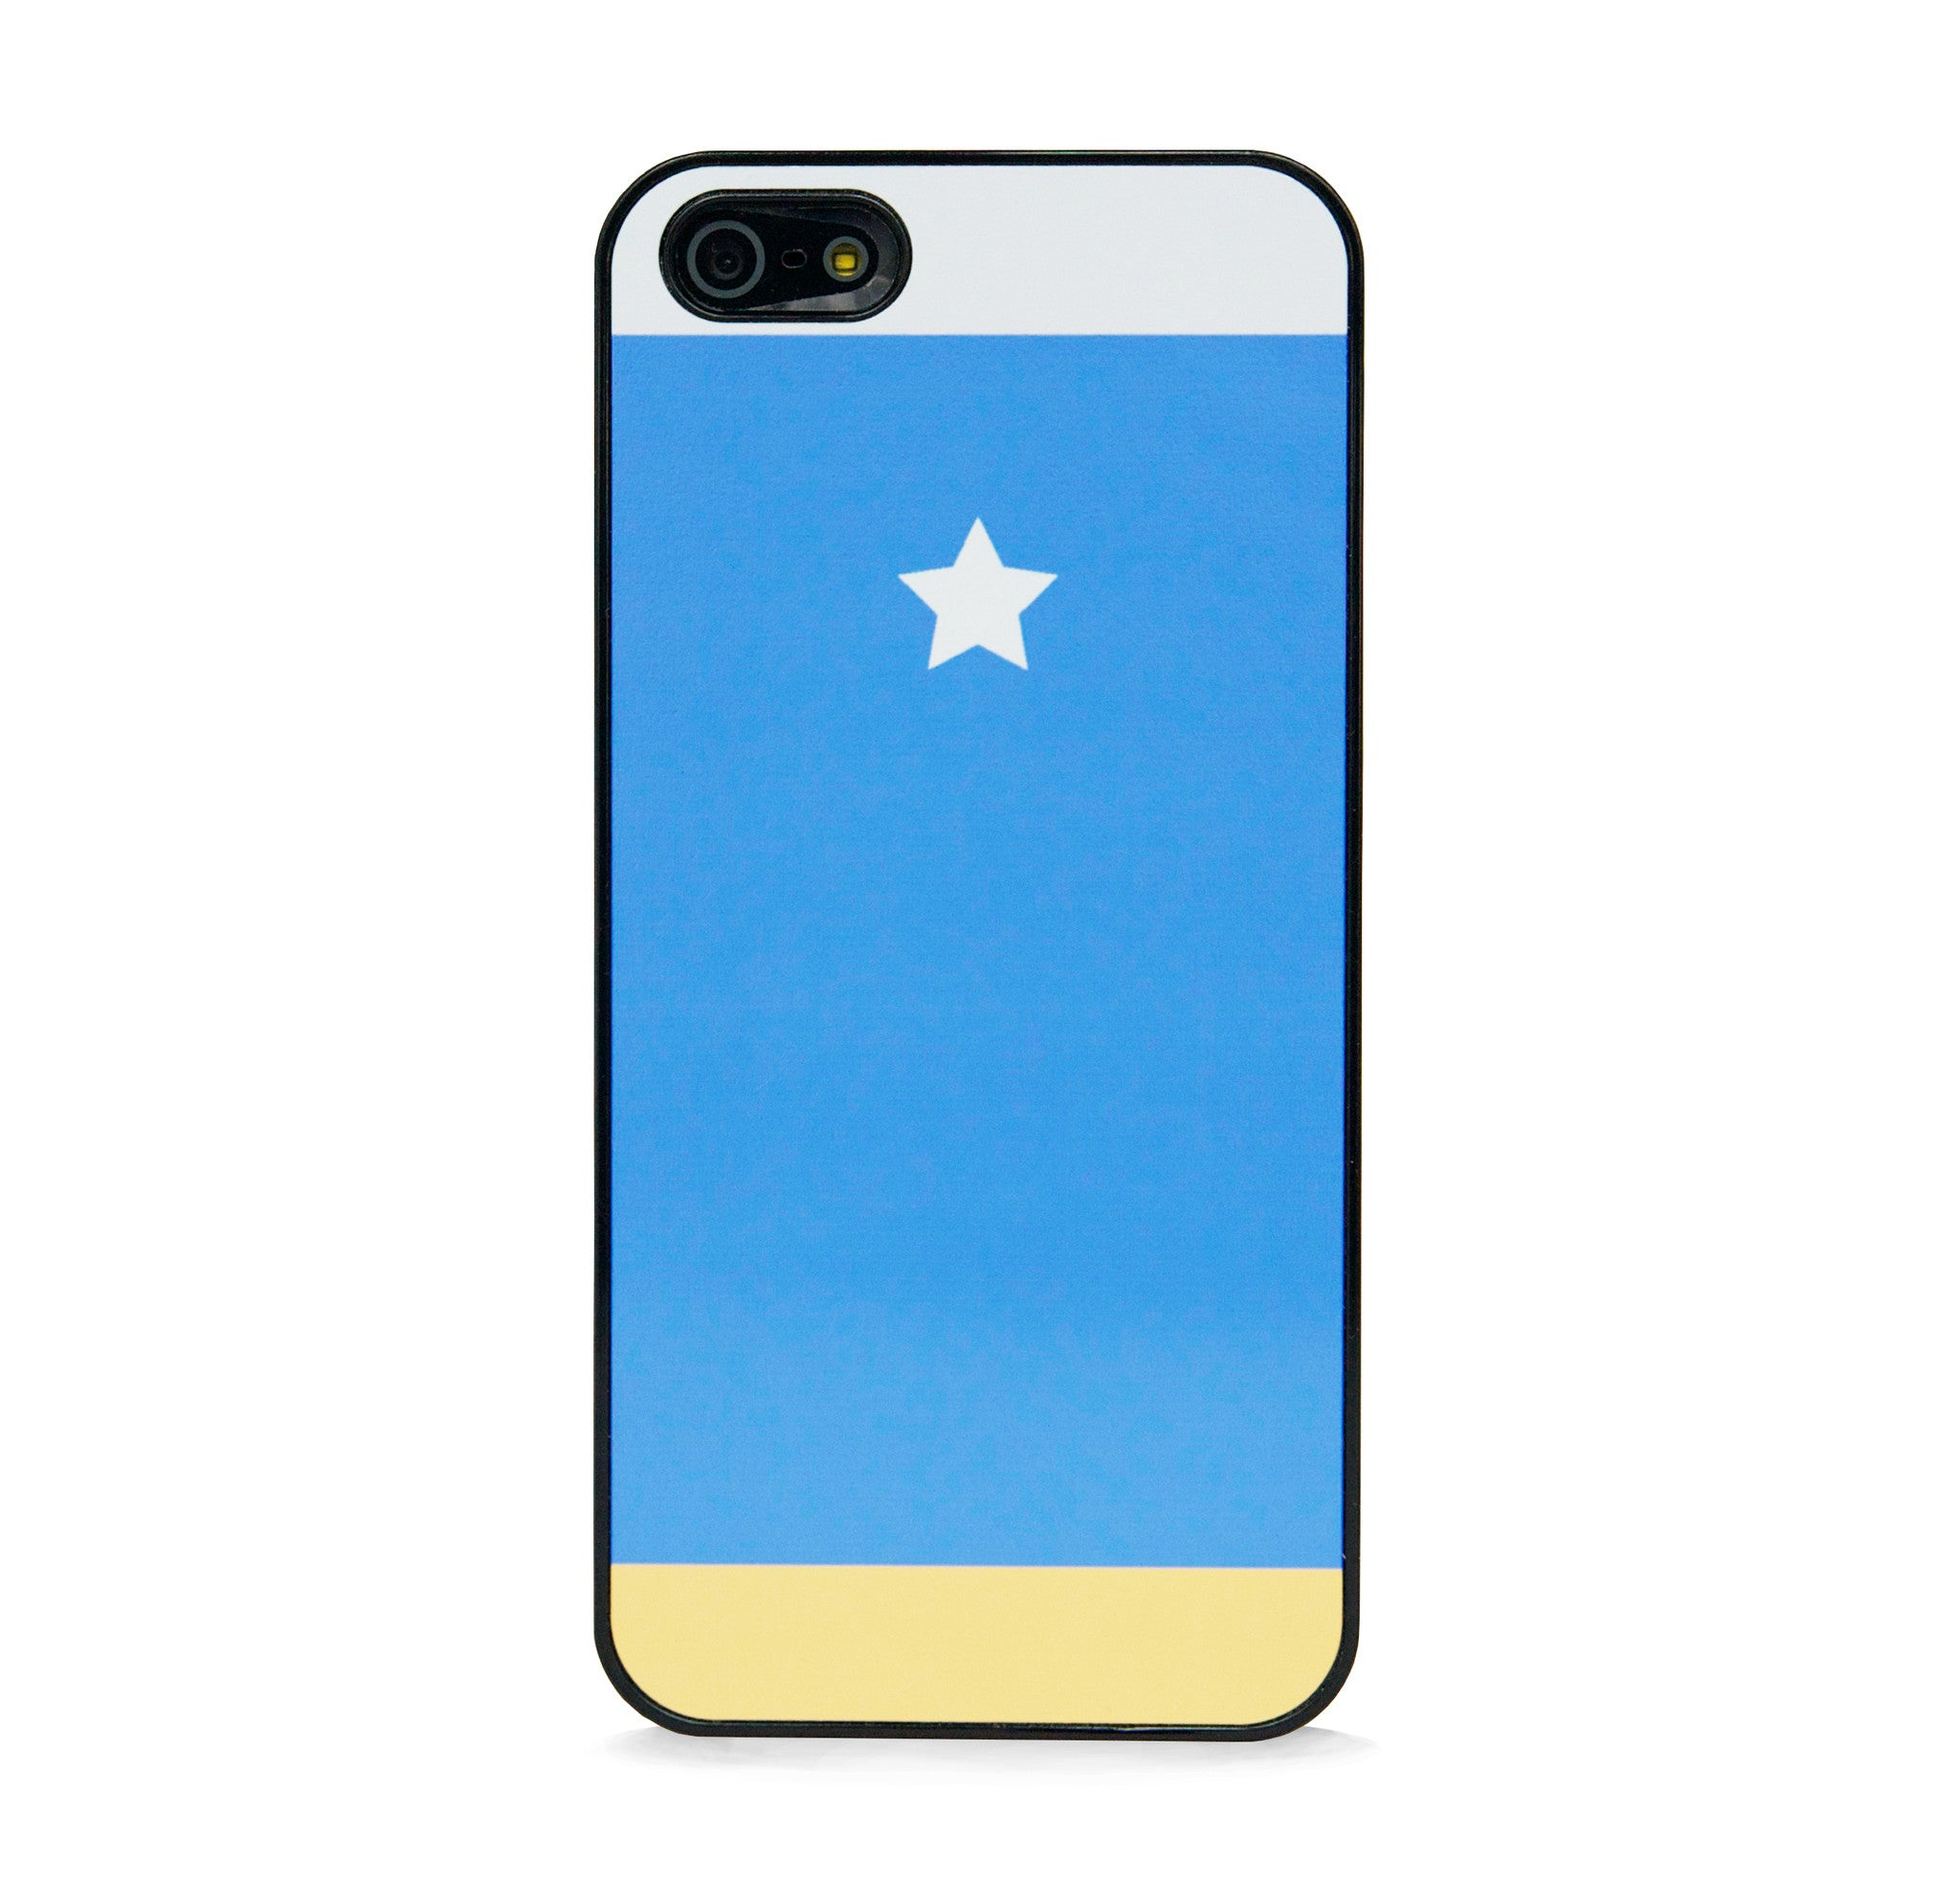 SYMBOL STAR COLOR BLOCK FOR IPHONE 5/5S